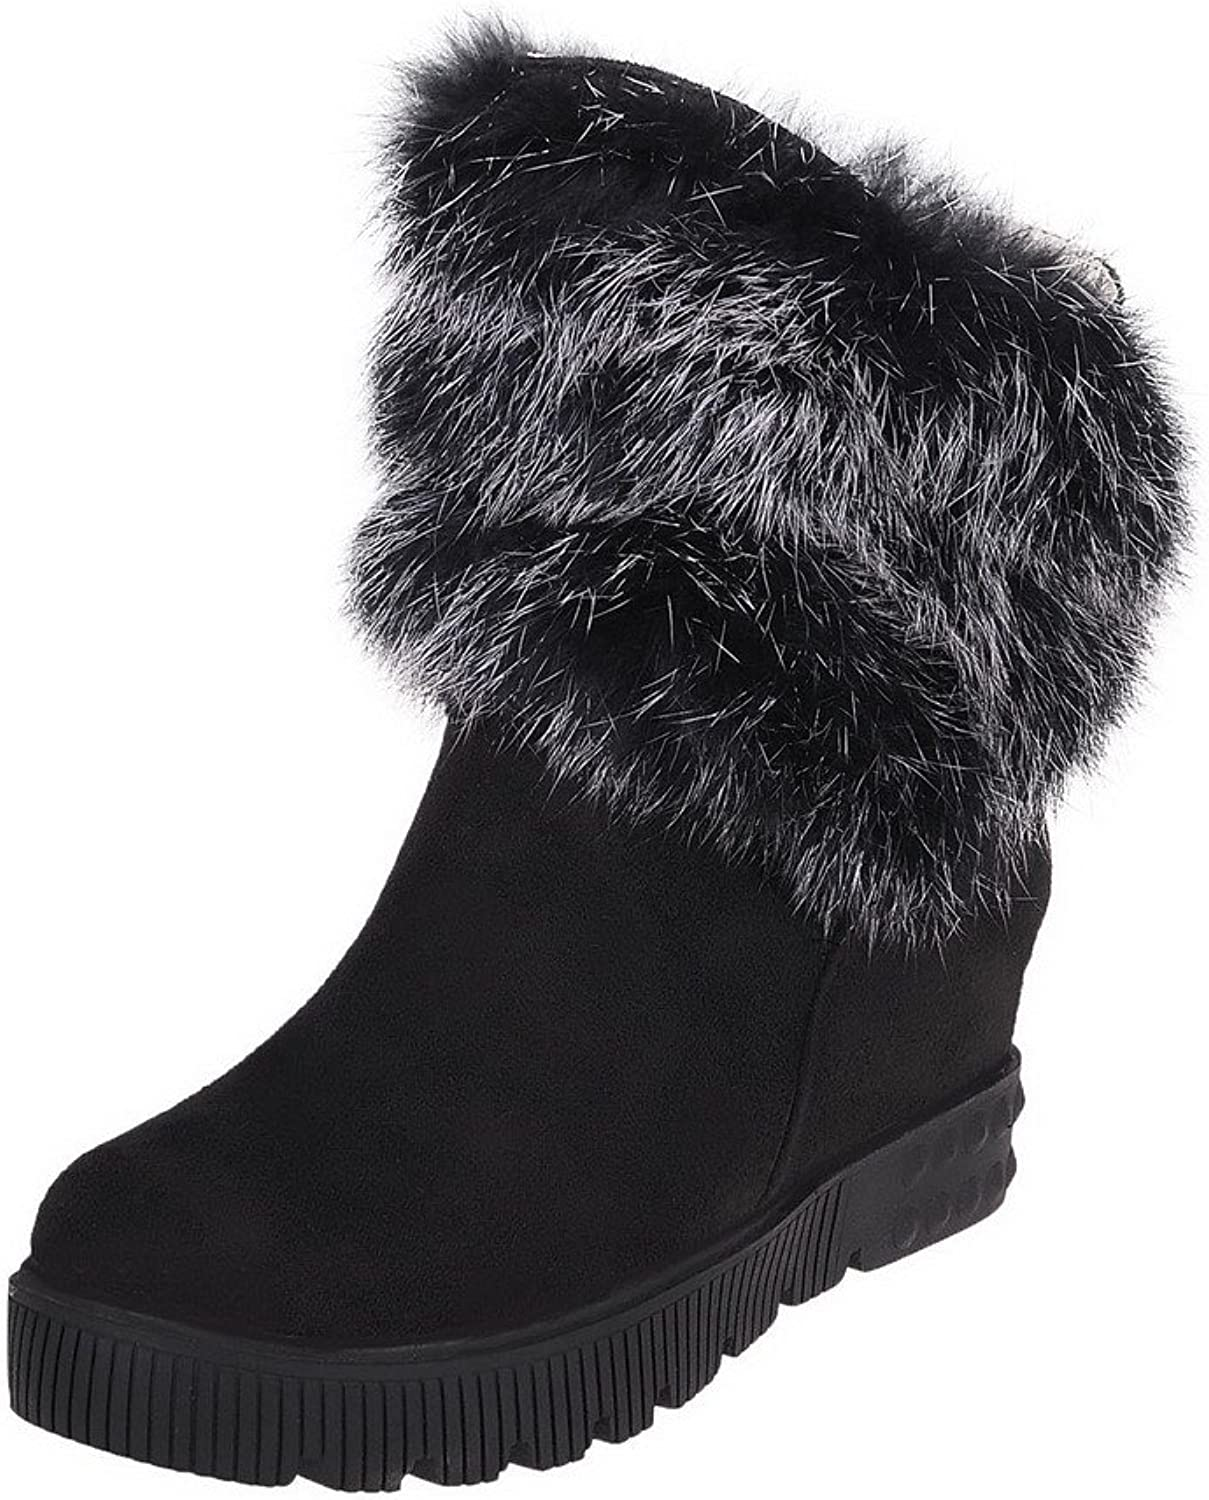 WeiPoot Womens Blend Materials Pull-On Solid Round Closed Toe Boots